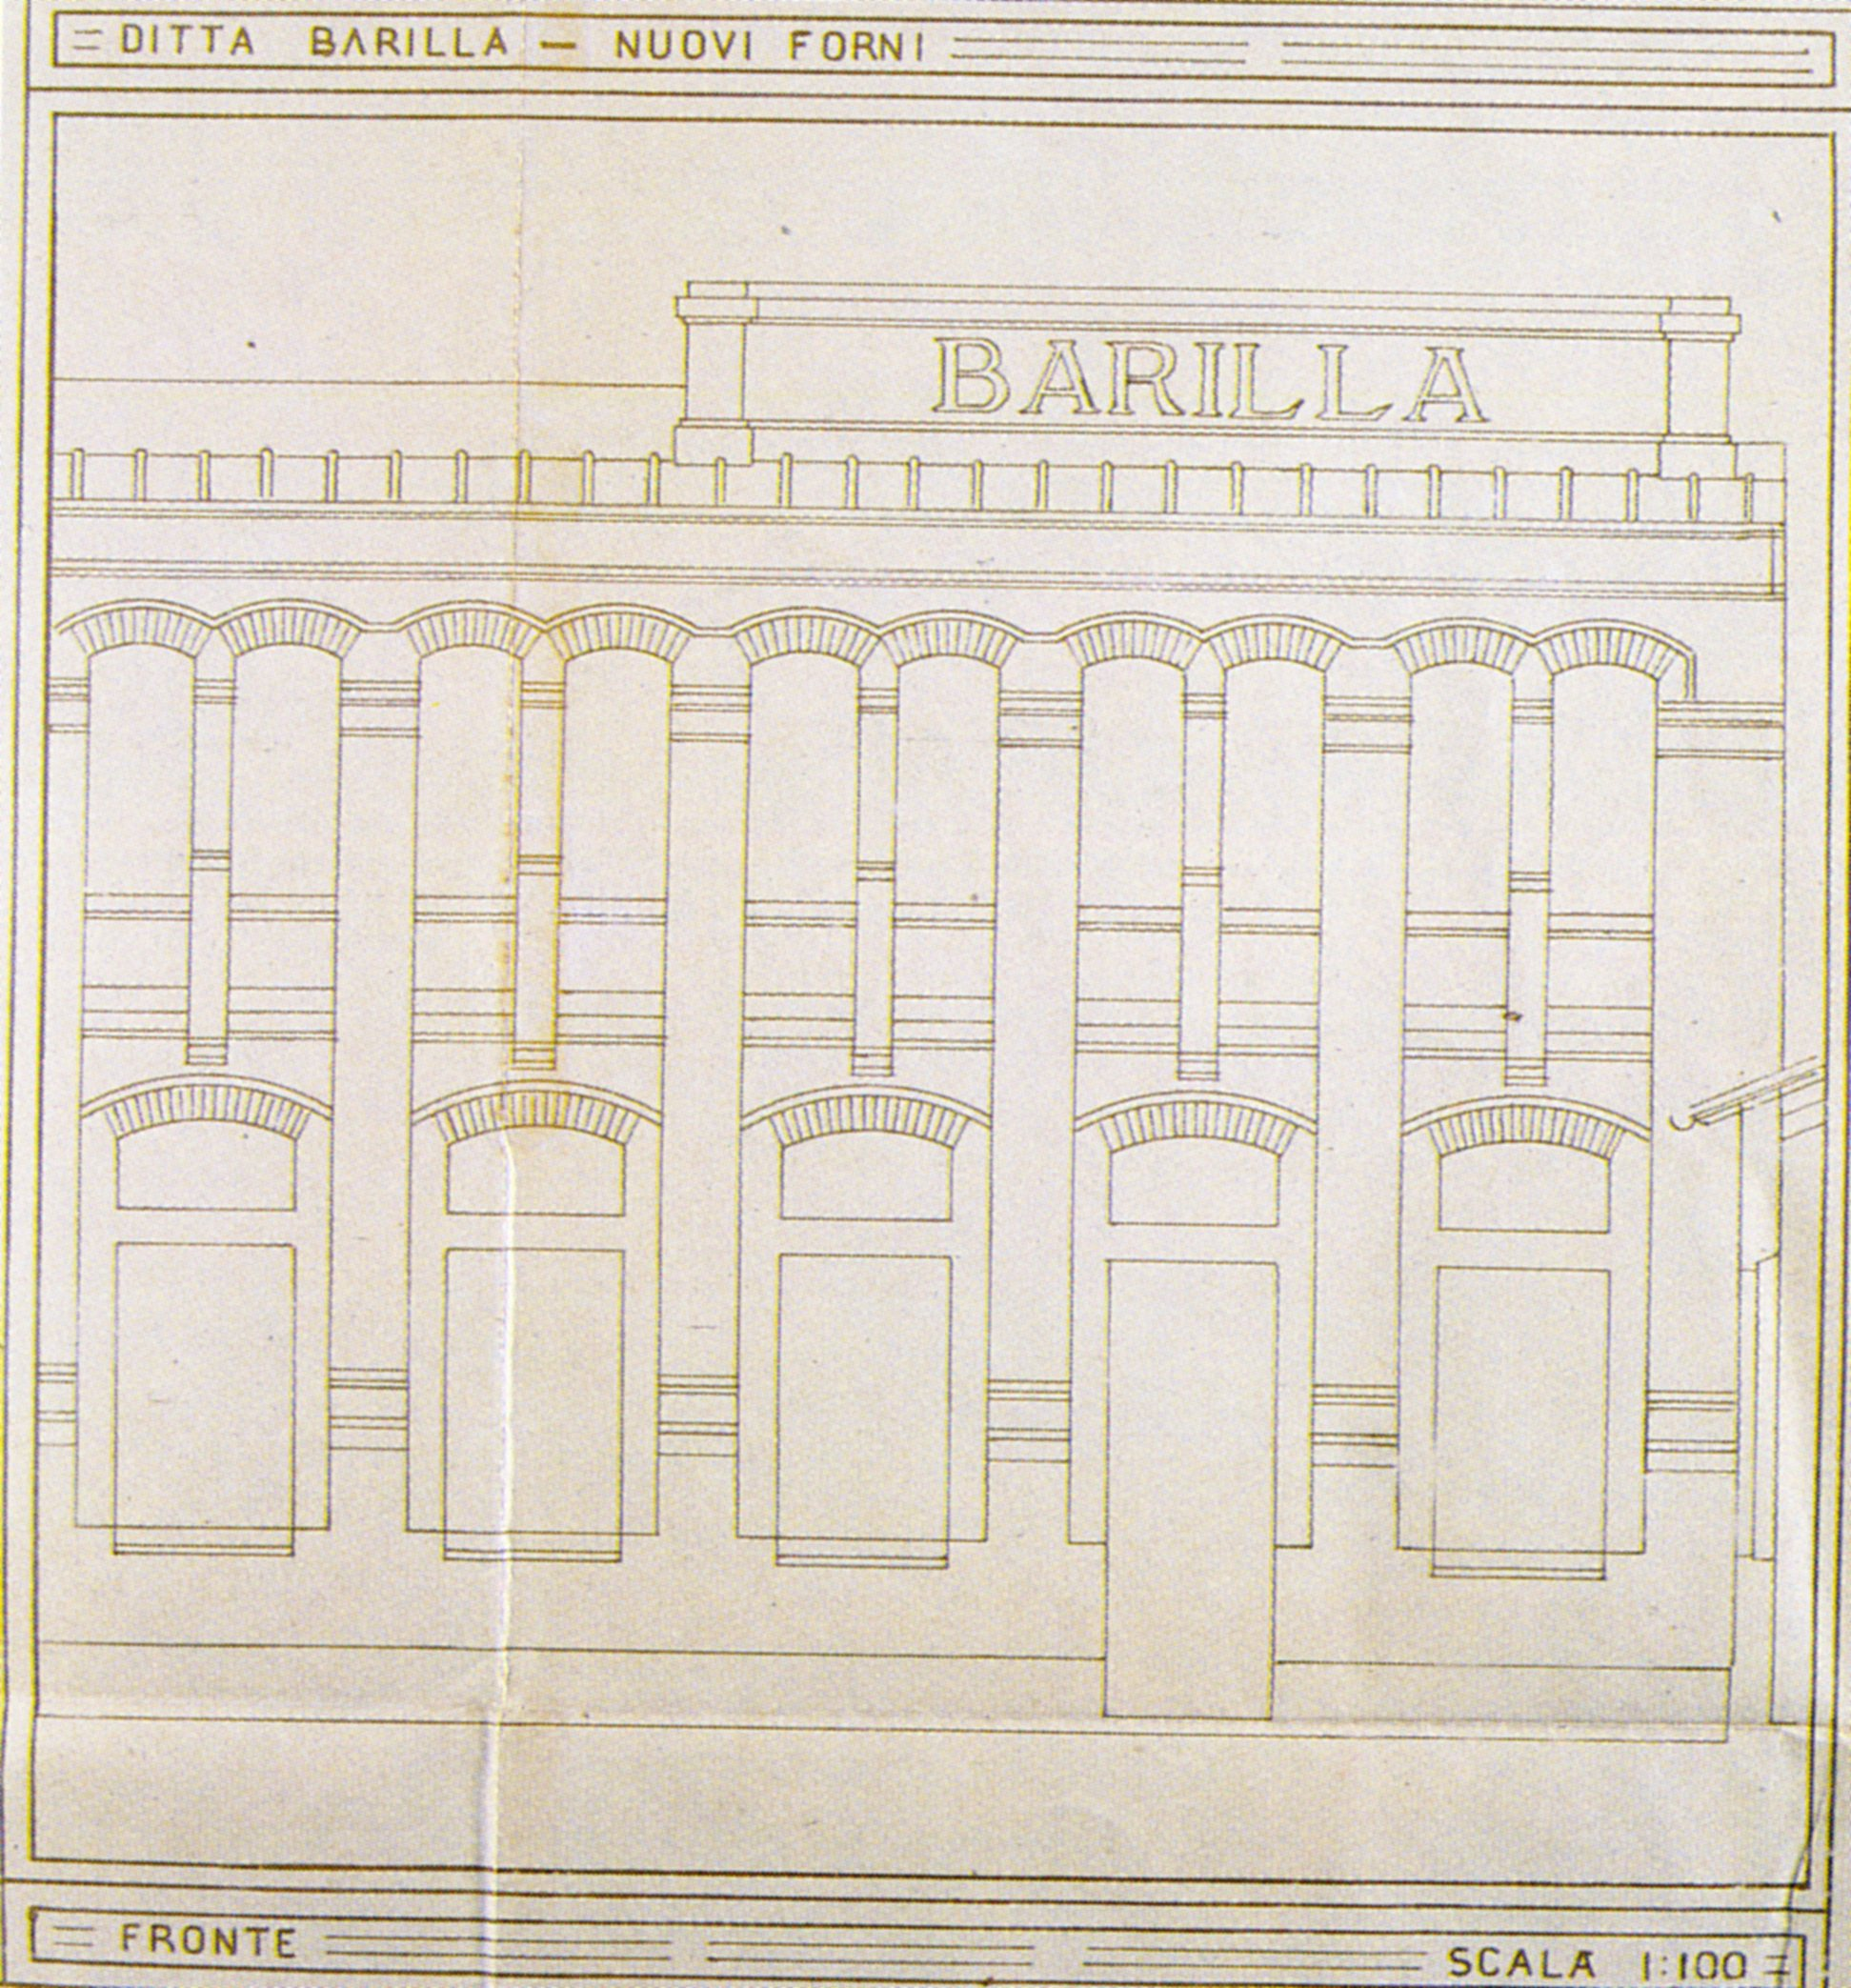 Camillo Uccelli, Design for the New Ovens, 1923: south perspective design [ASCPR, building licenses, 1922/293].